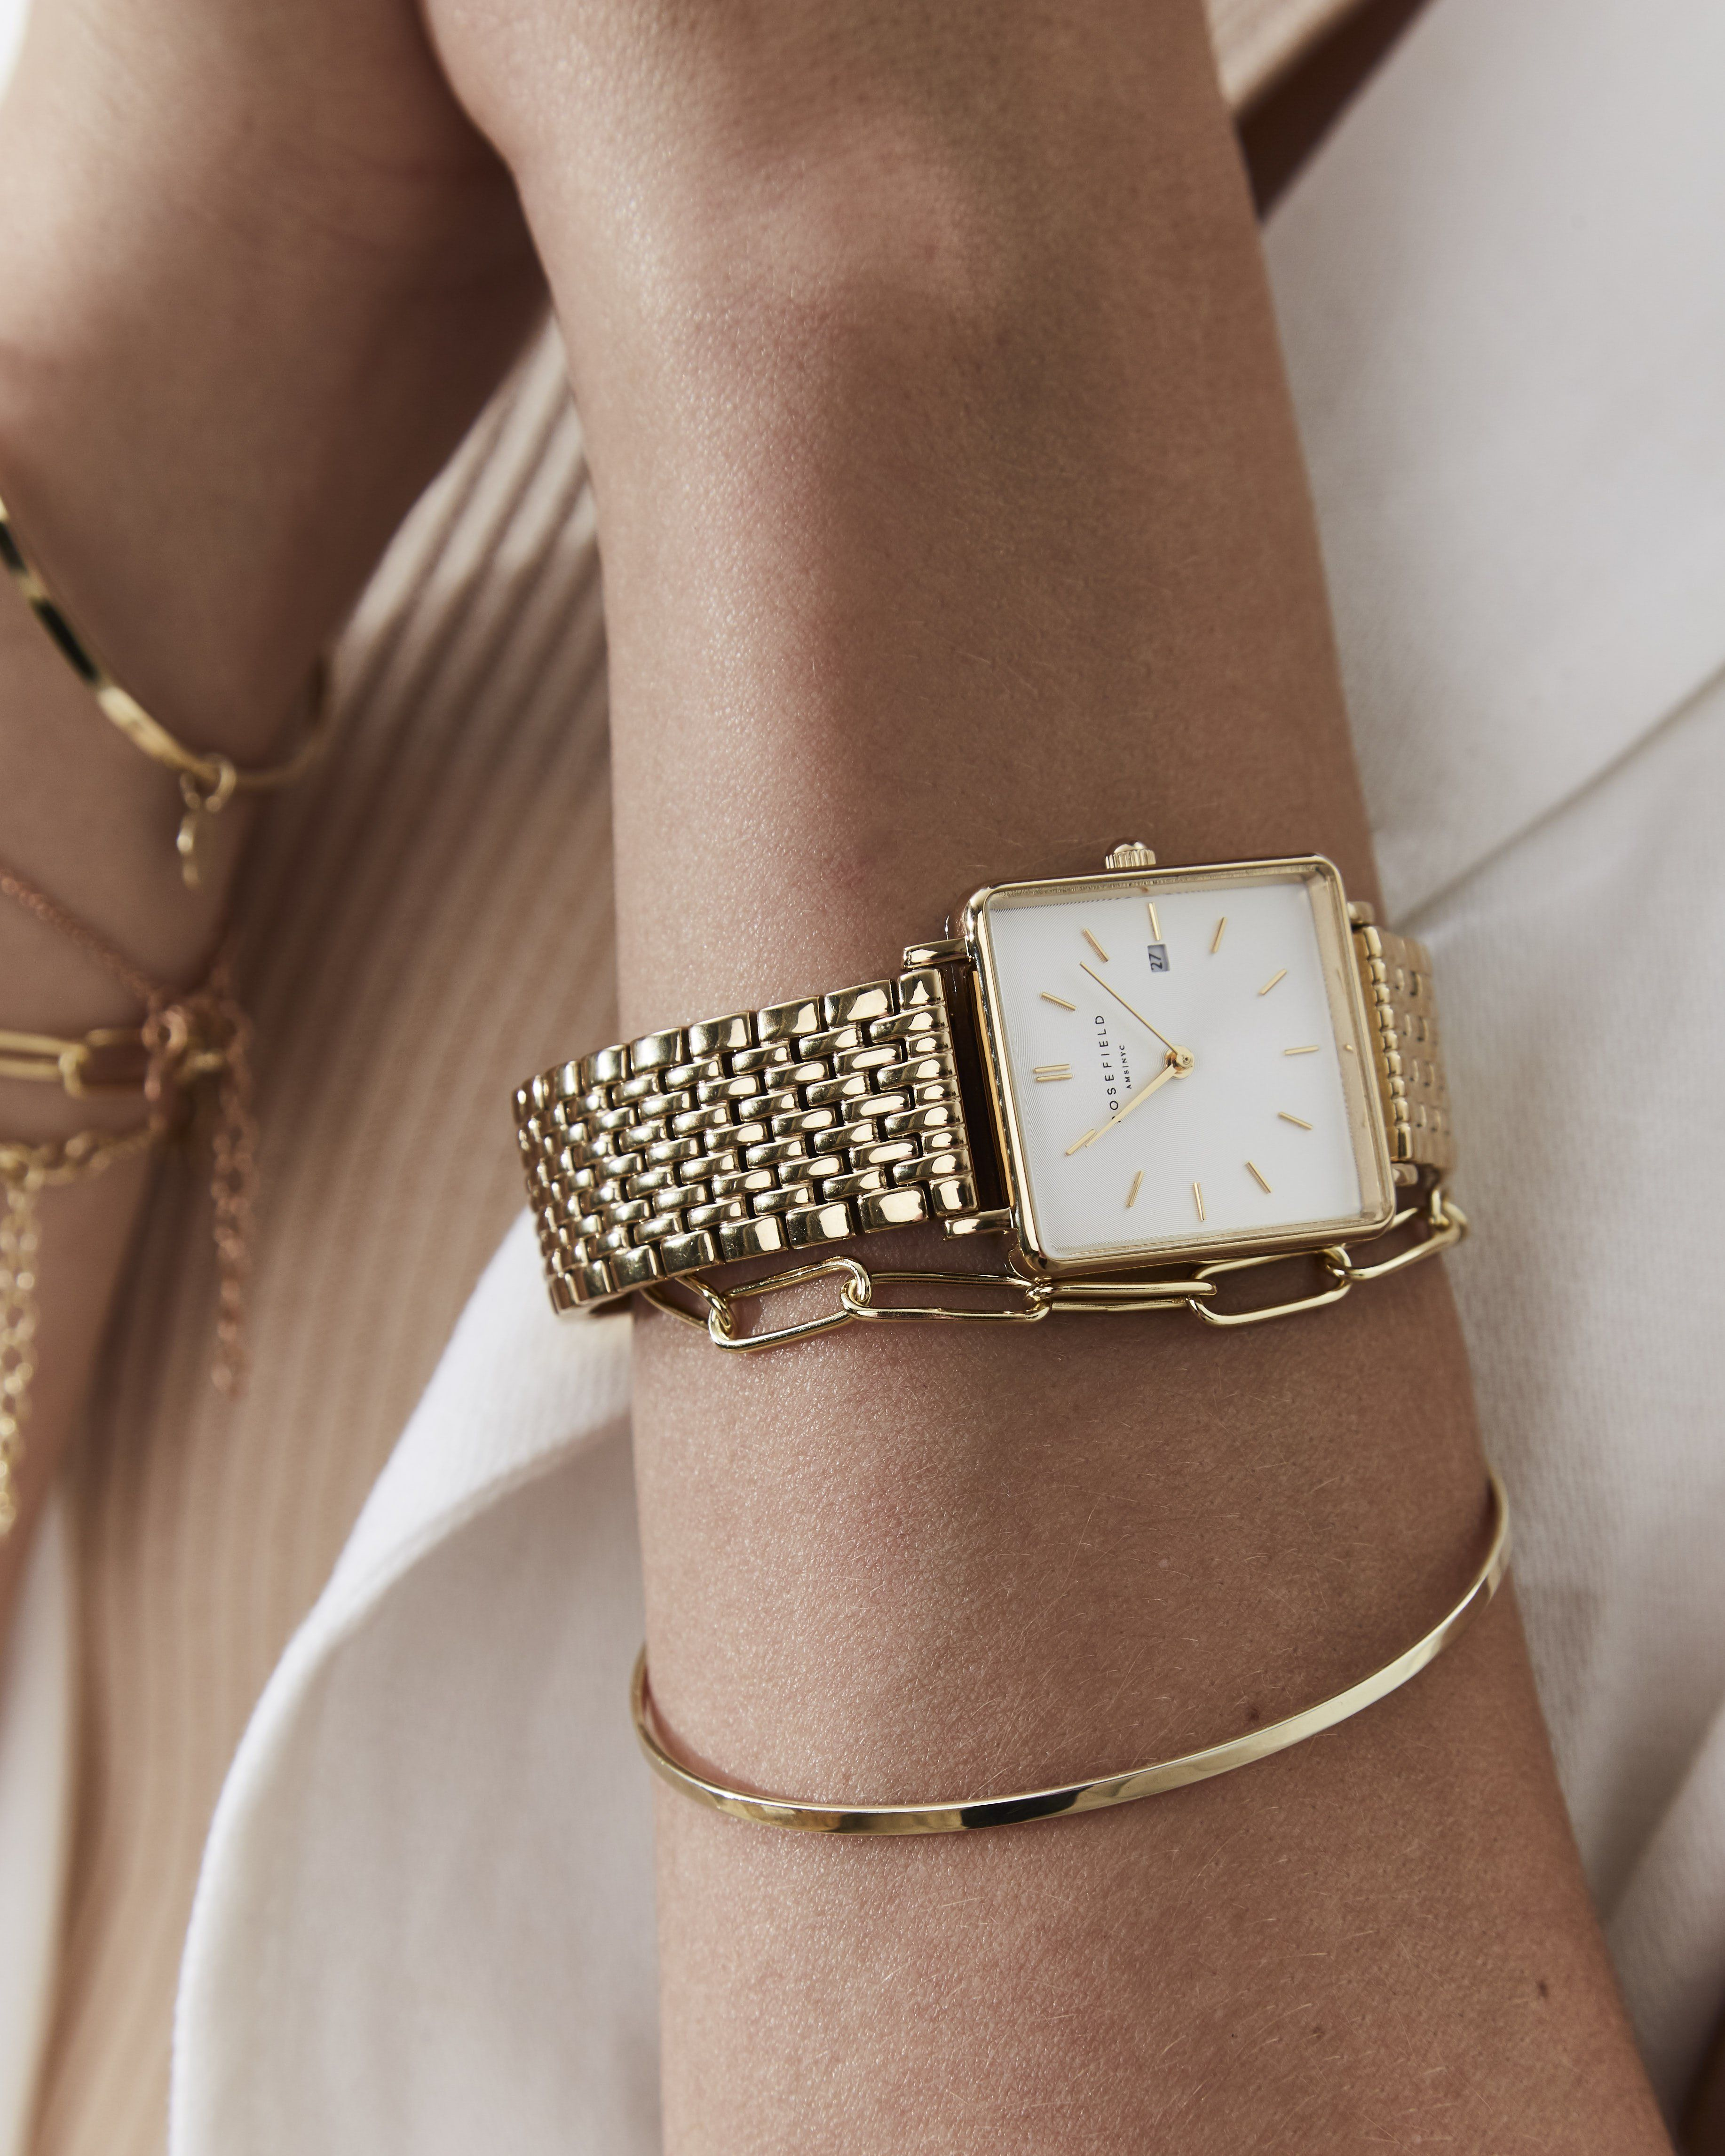 d89e3bad7 Gold women's watch - Gold stainless steel strap | The Boxy | Rosefield  Watches